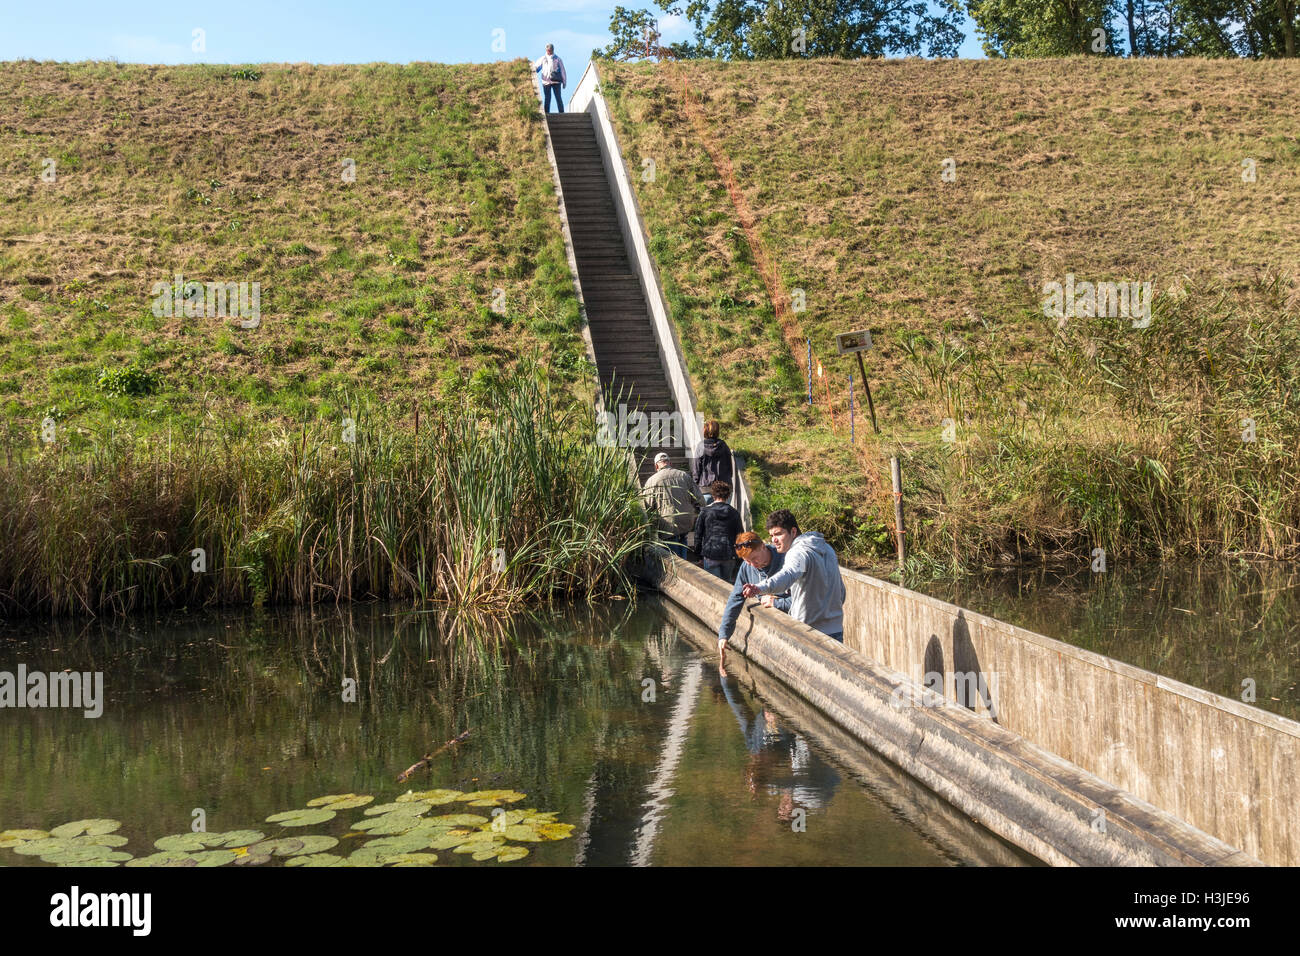 https://c7.alamy.com/comp/H3JE96/moses-bridge-netherlands-H3JE96.jpg